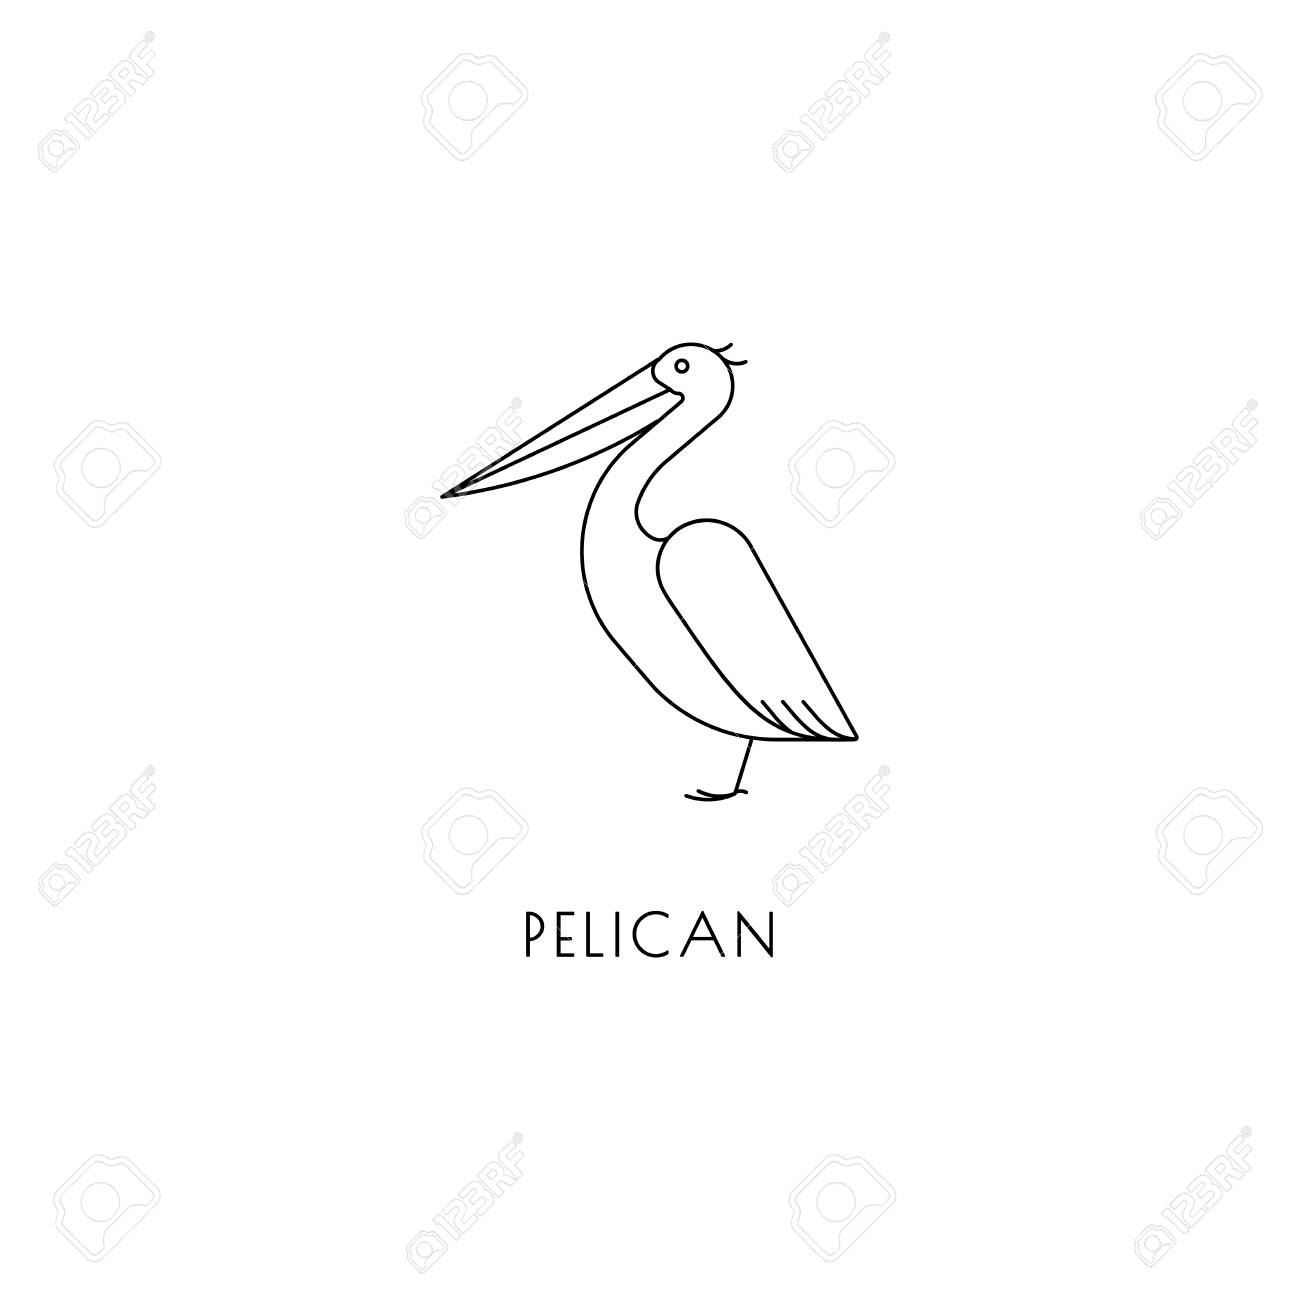 pelican outline icon royalty free cliparts vectors and stock